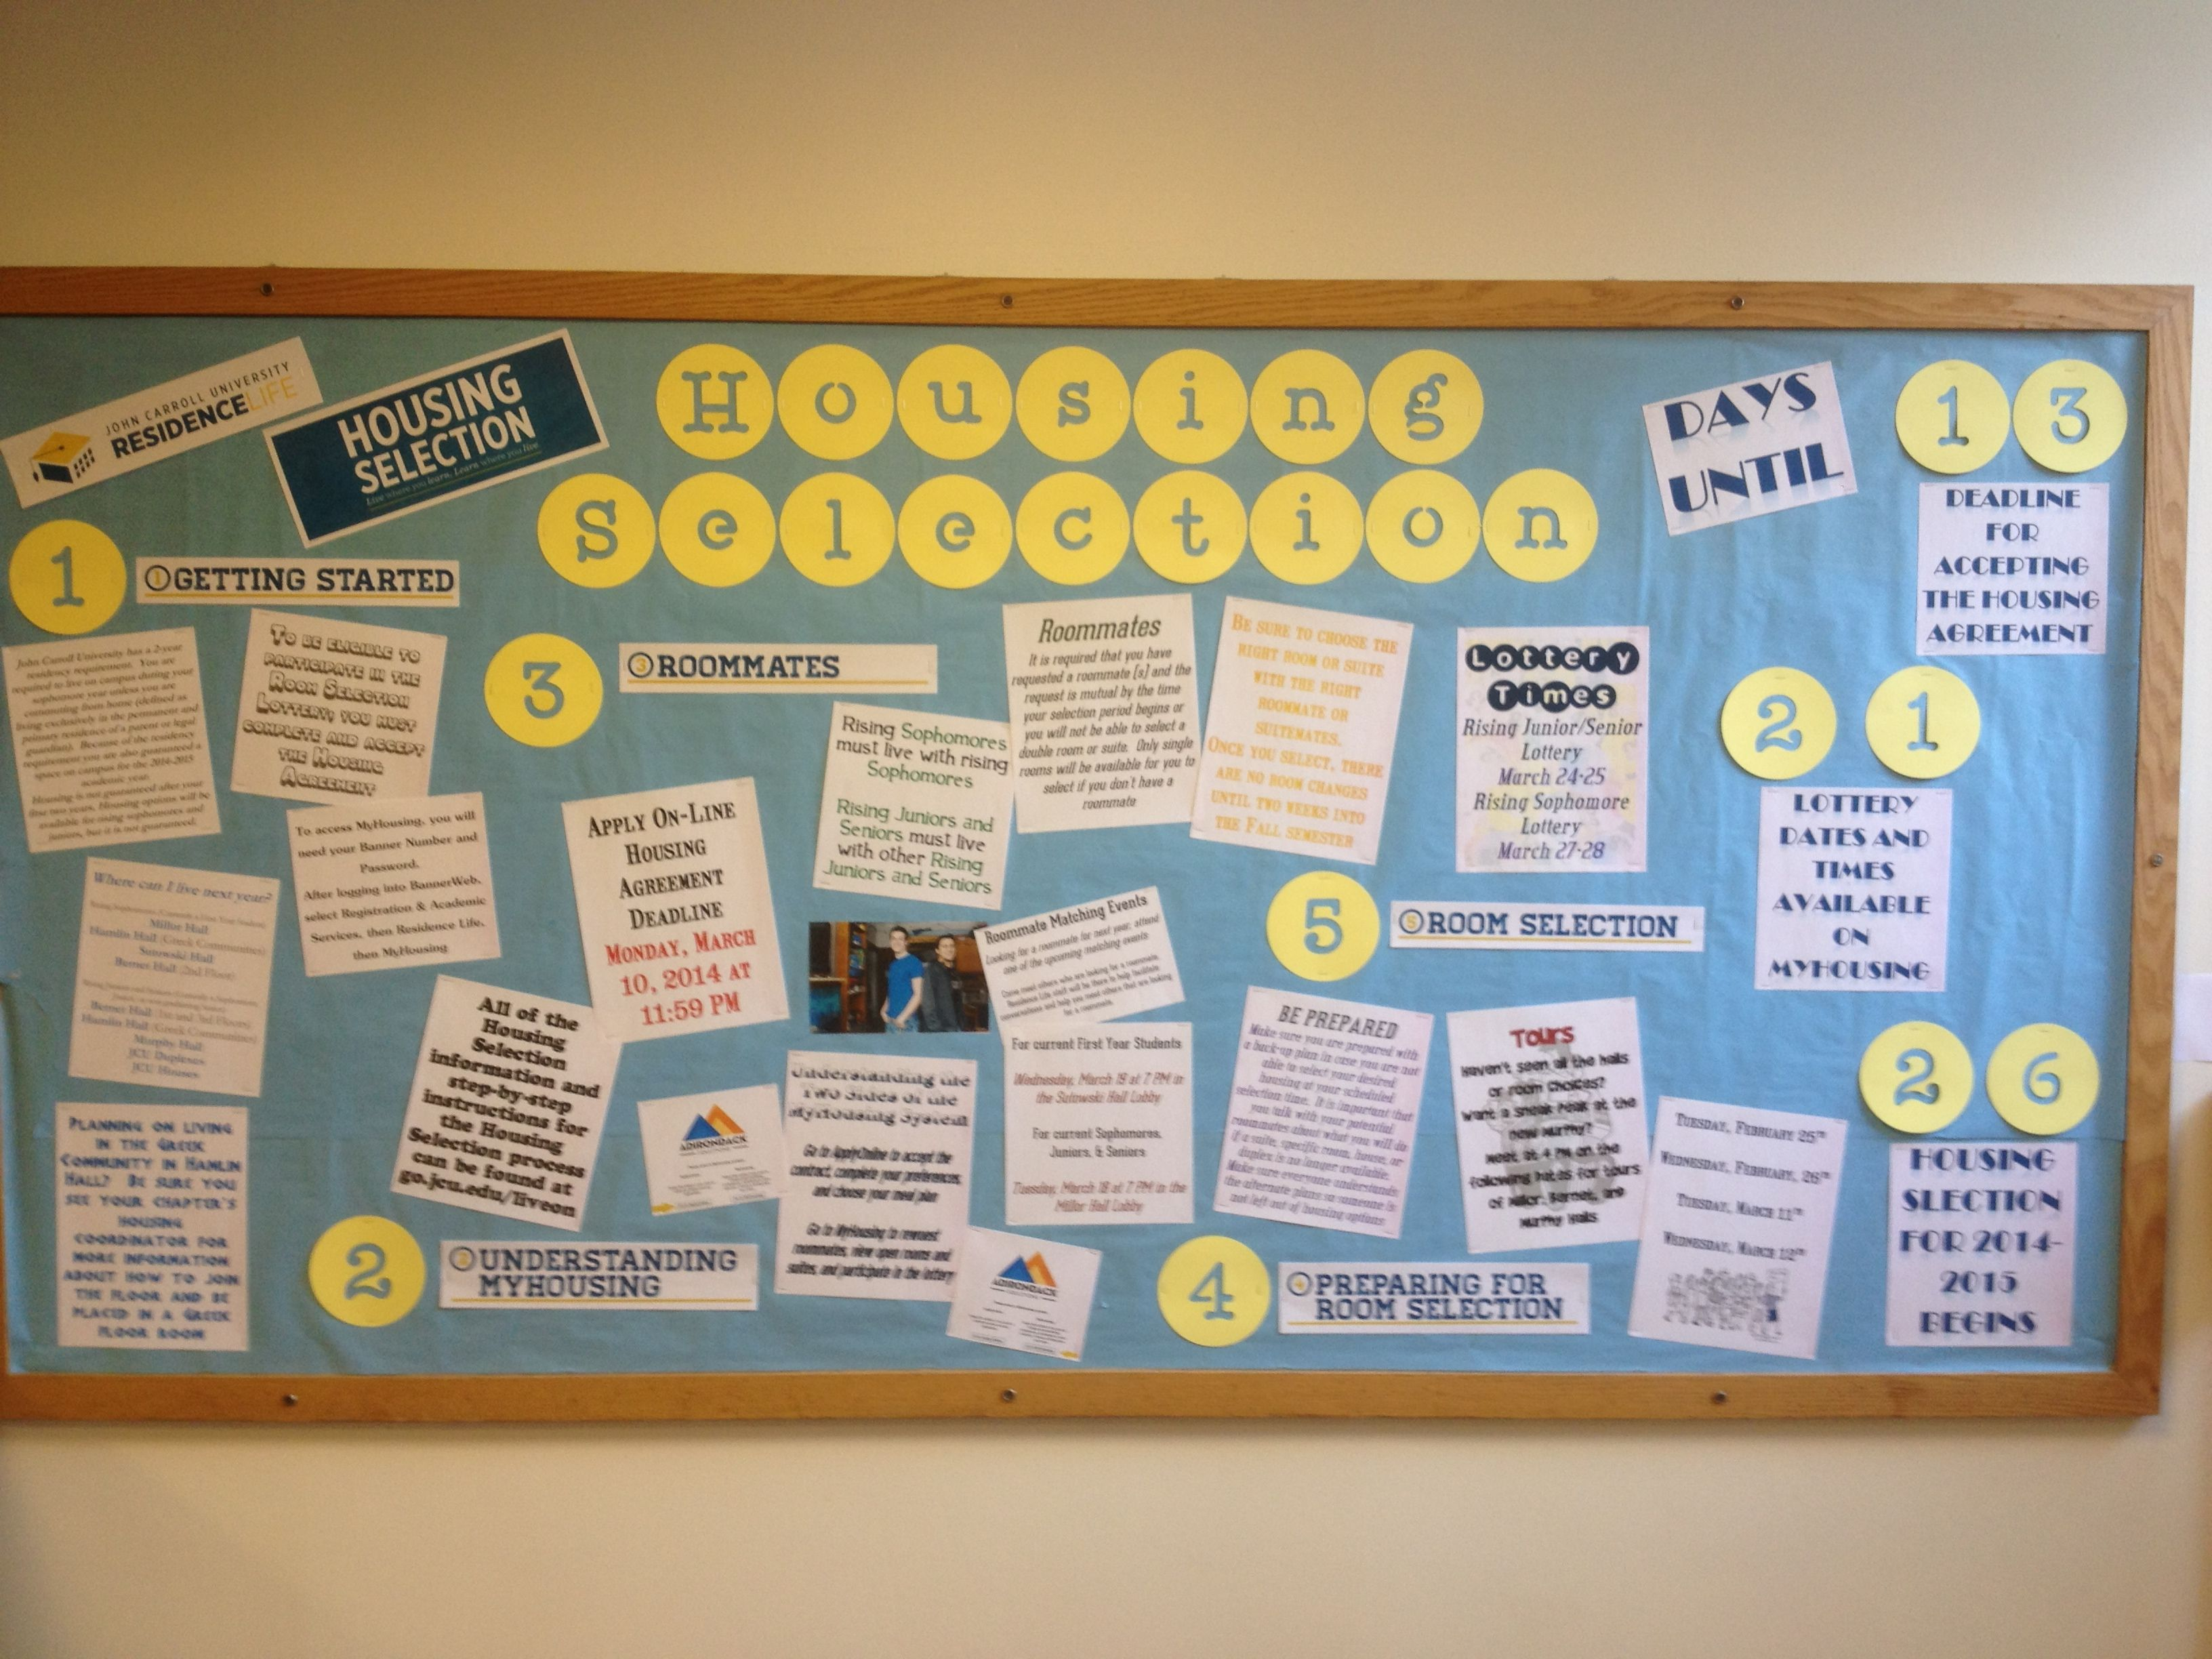 20142015 bulletin board on the housing selection process